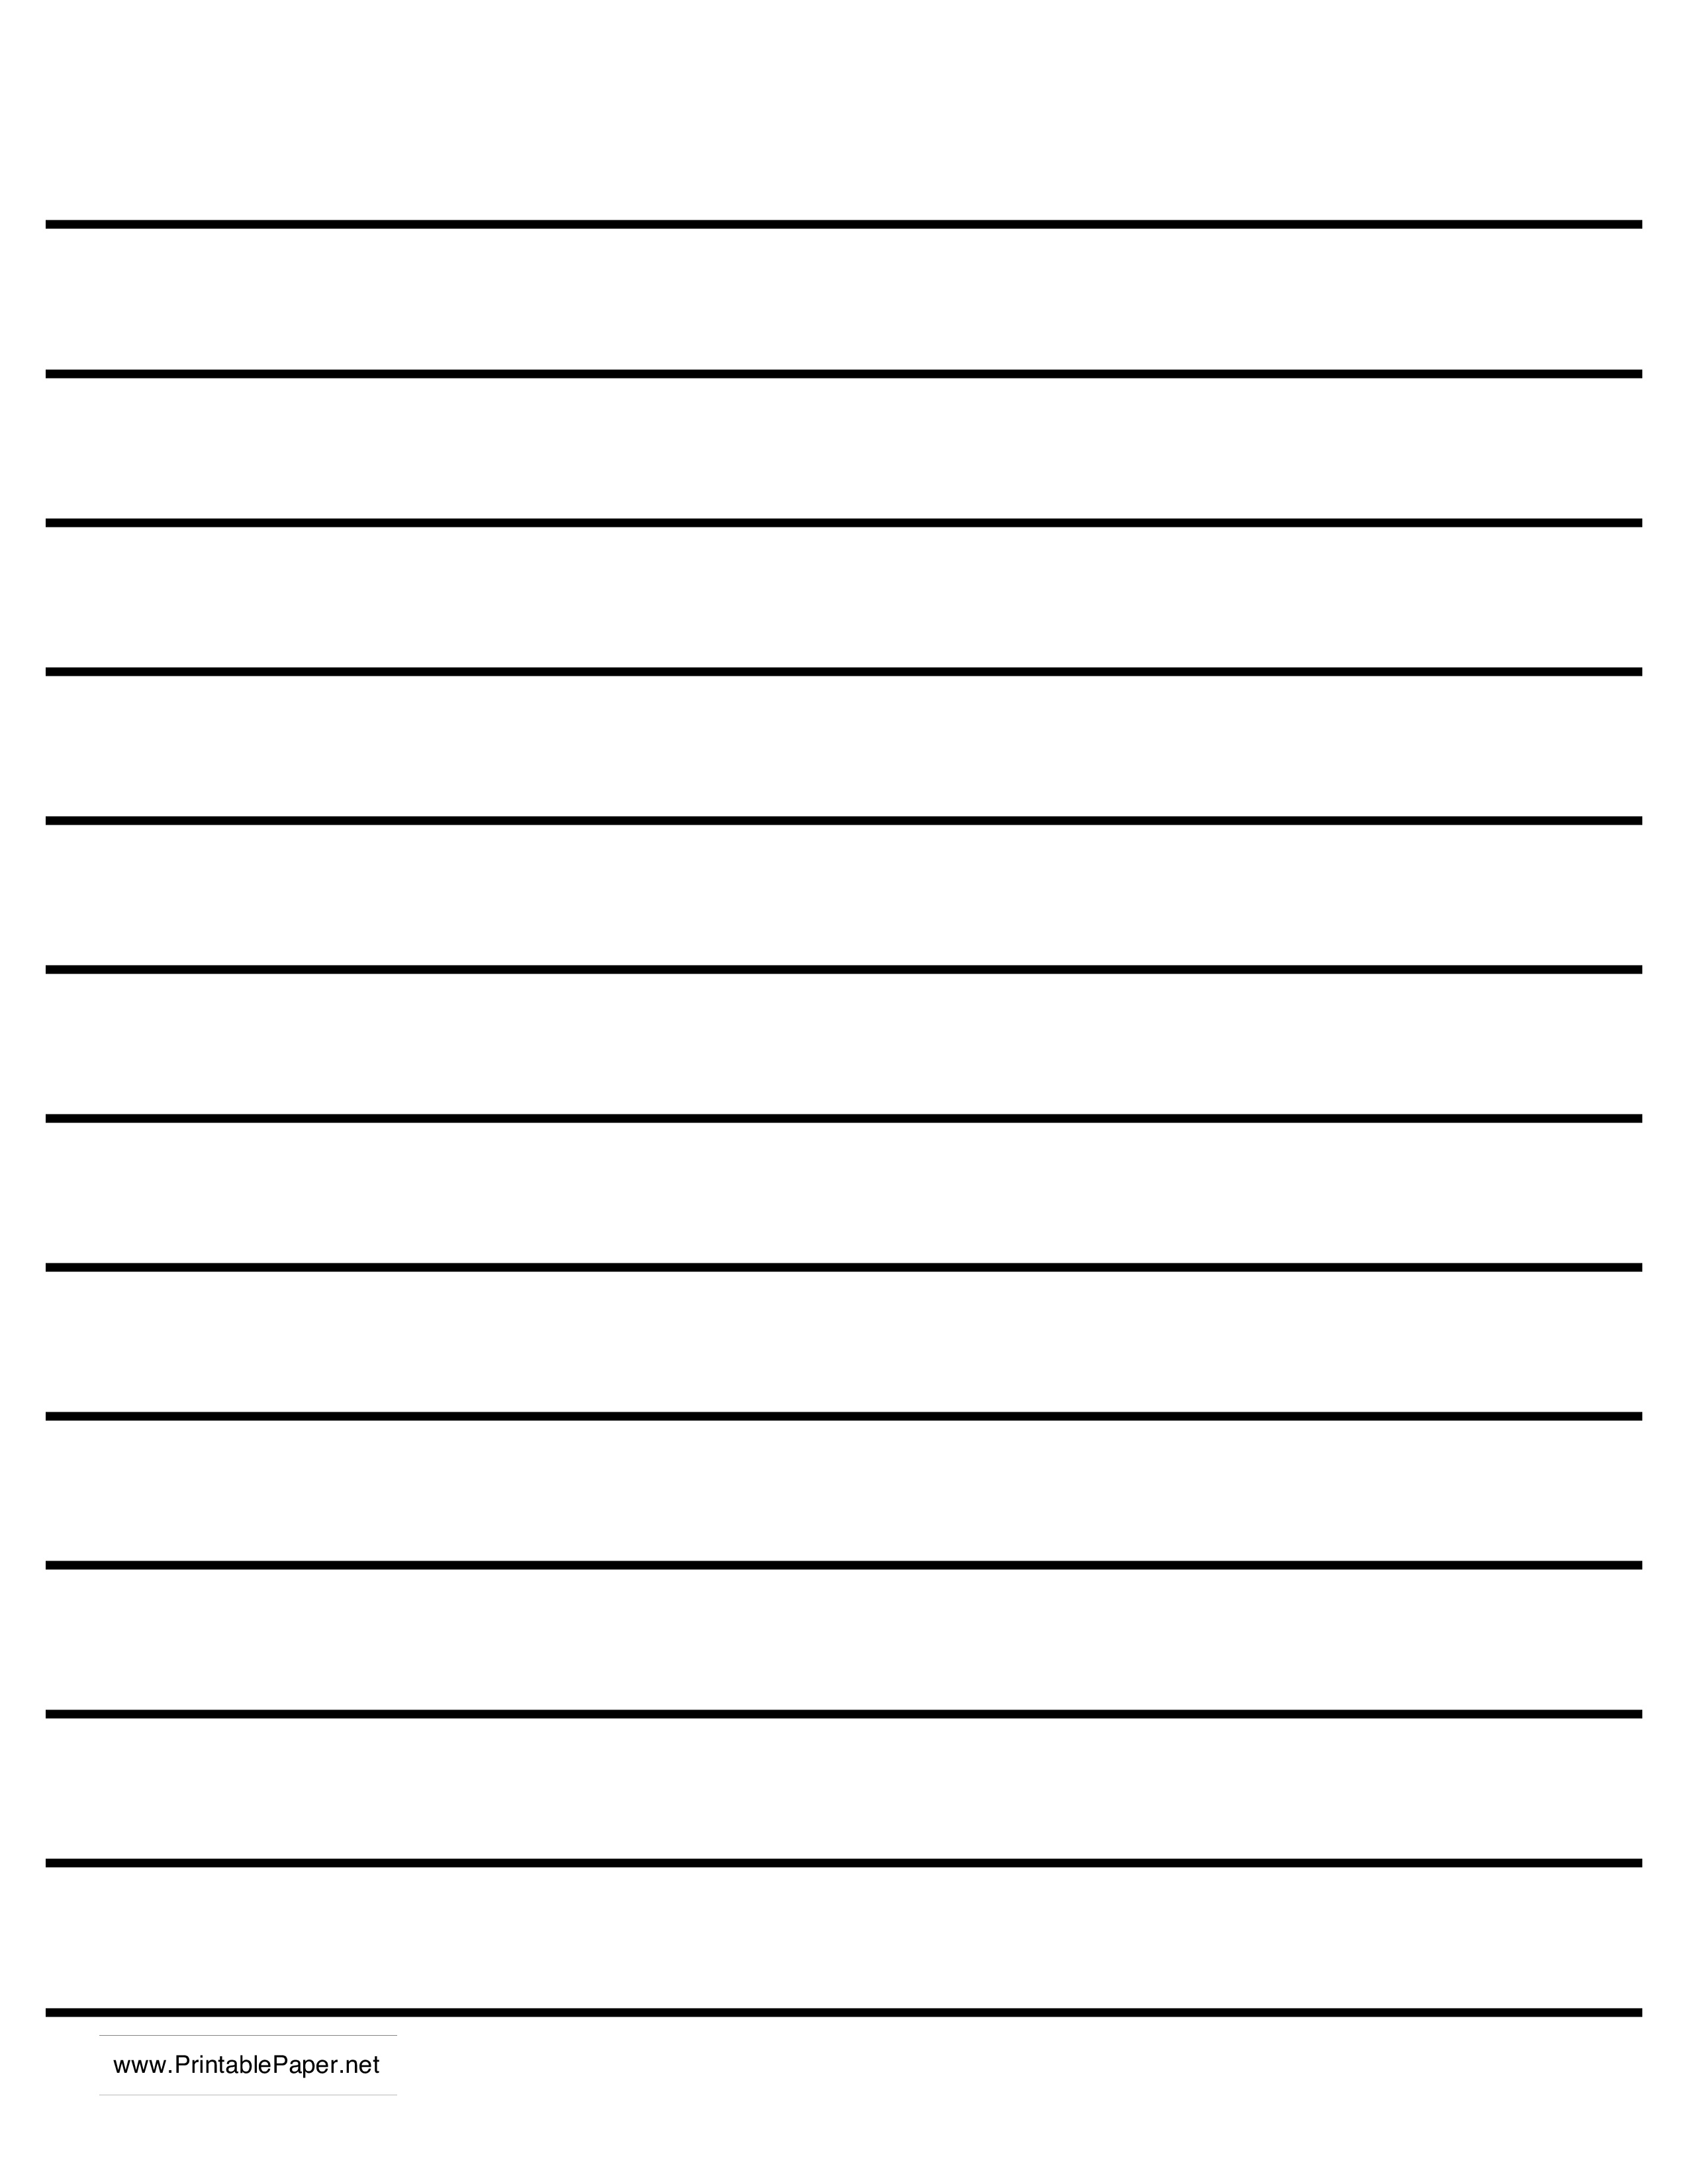 Printable Writing Paper With Lines | Hauck Mansion - Free Printable Writing Paper